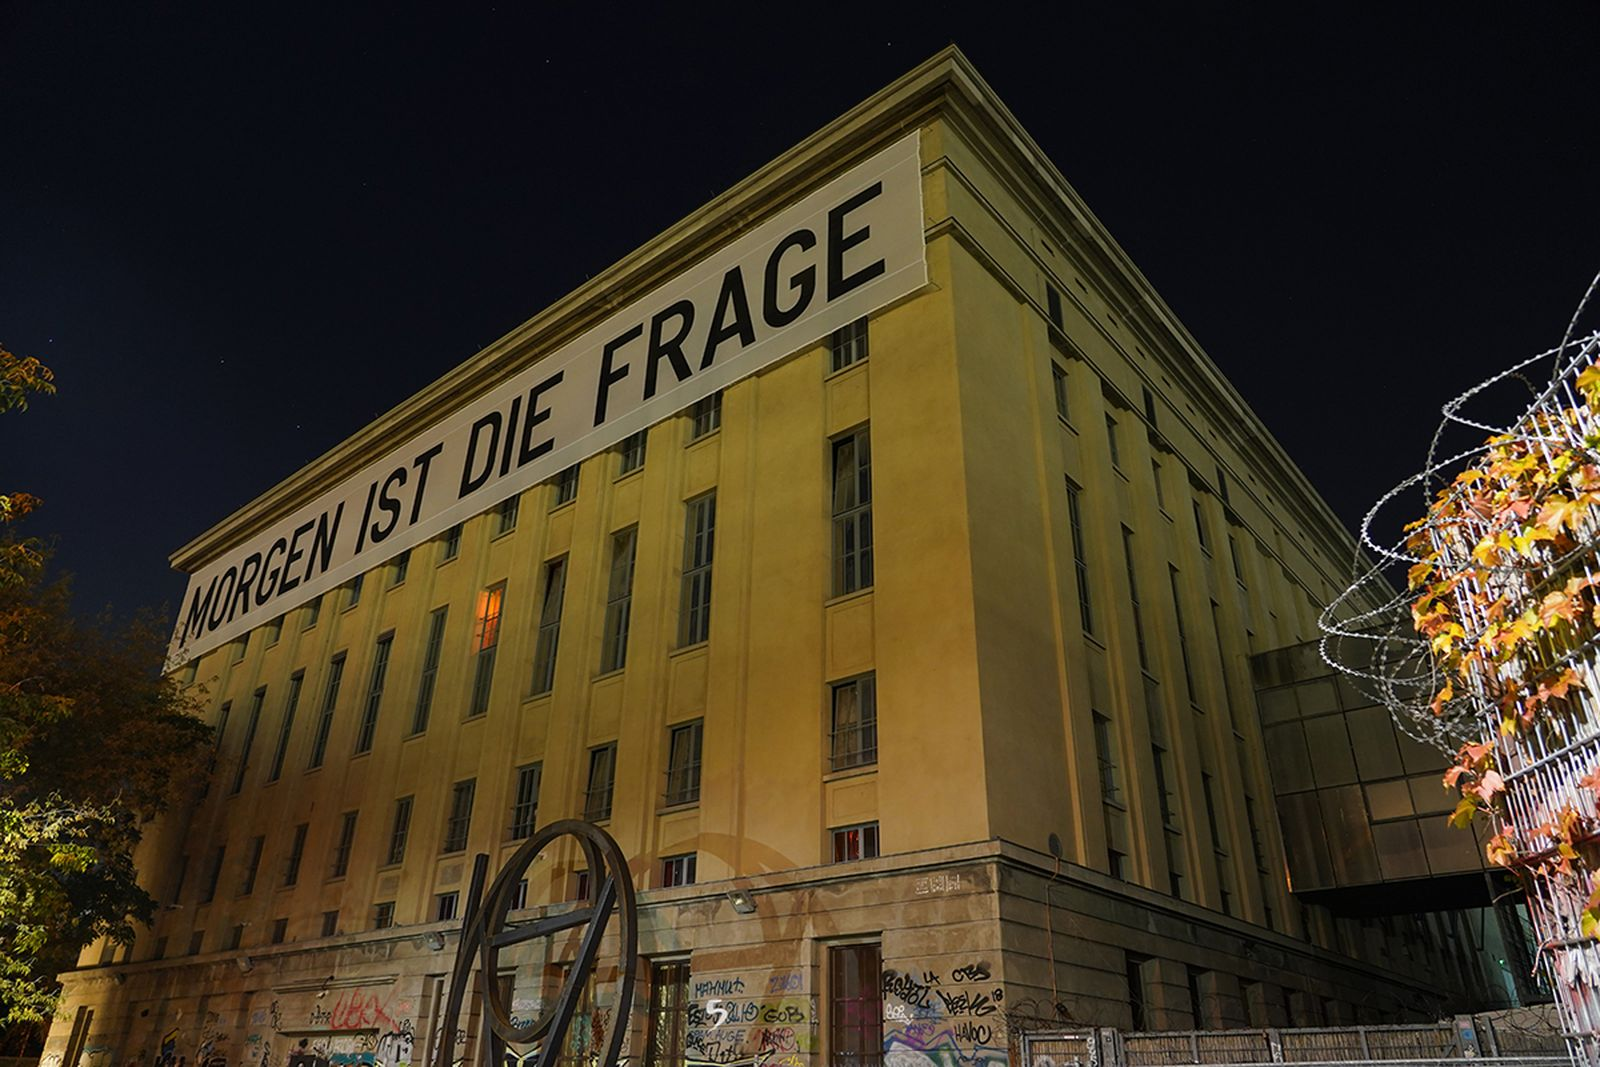 berghain building at night